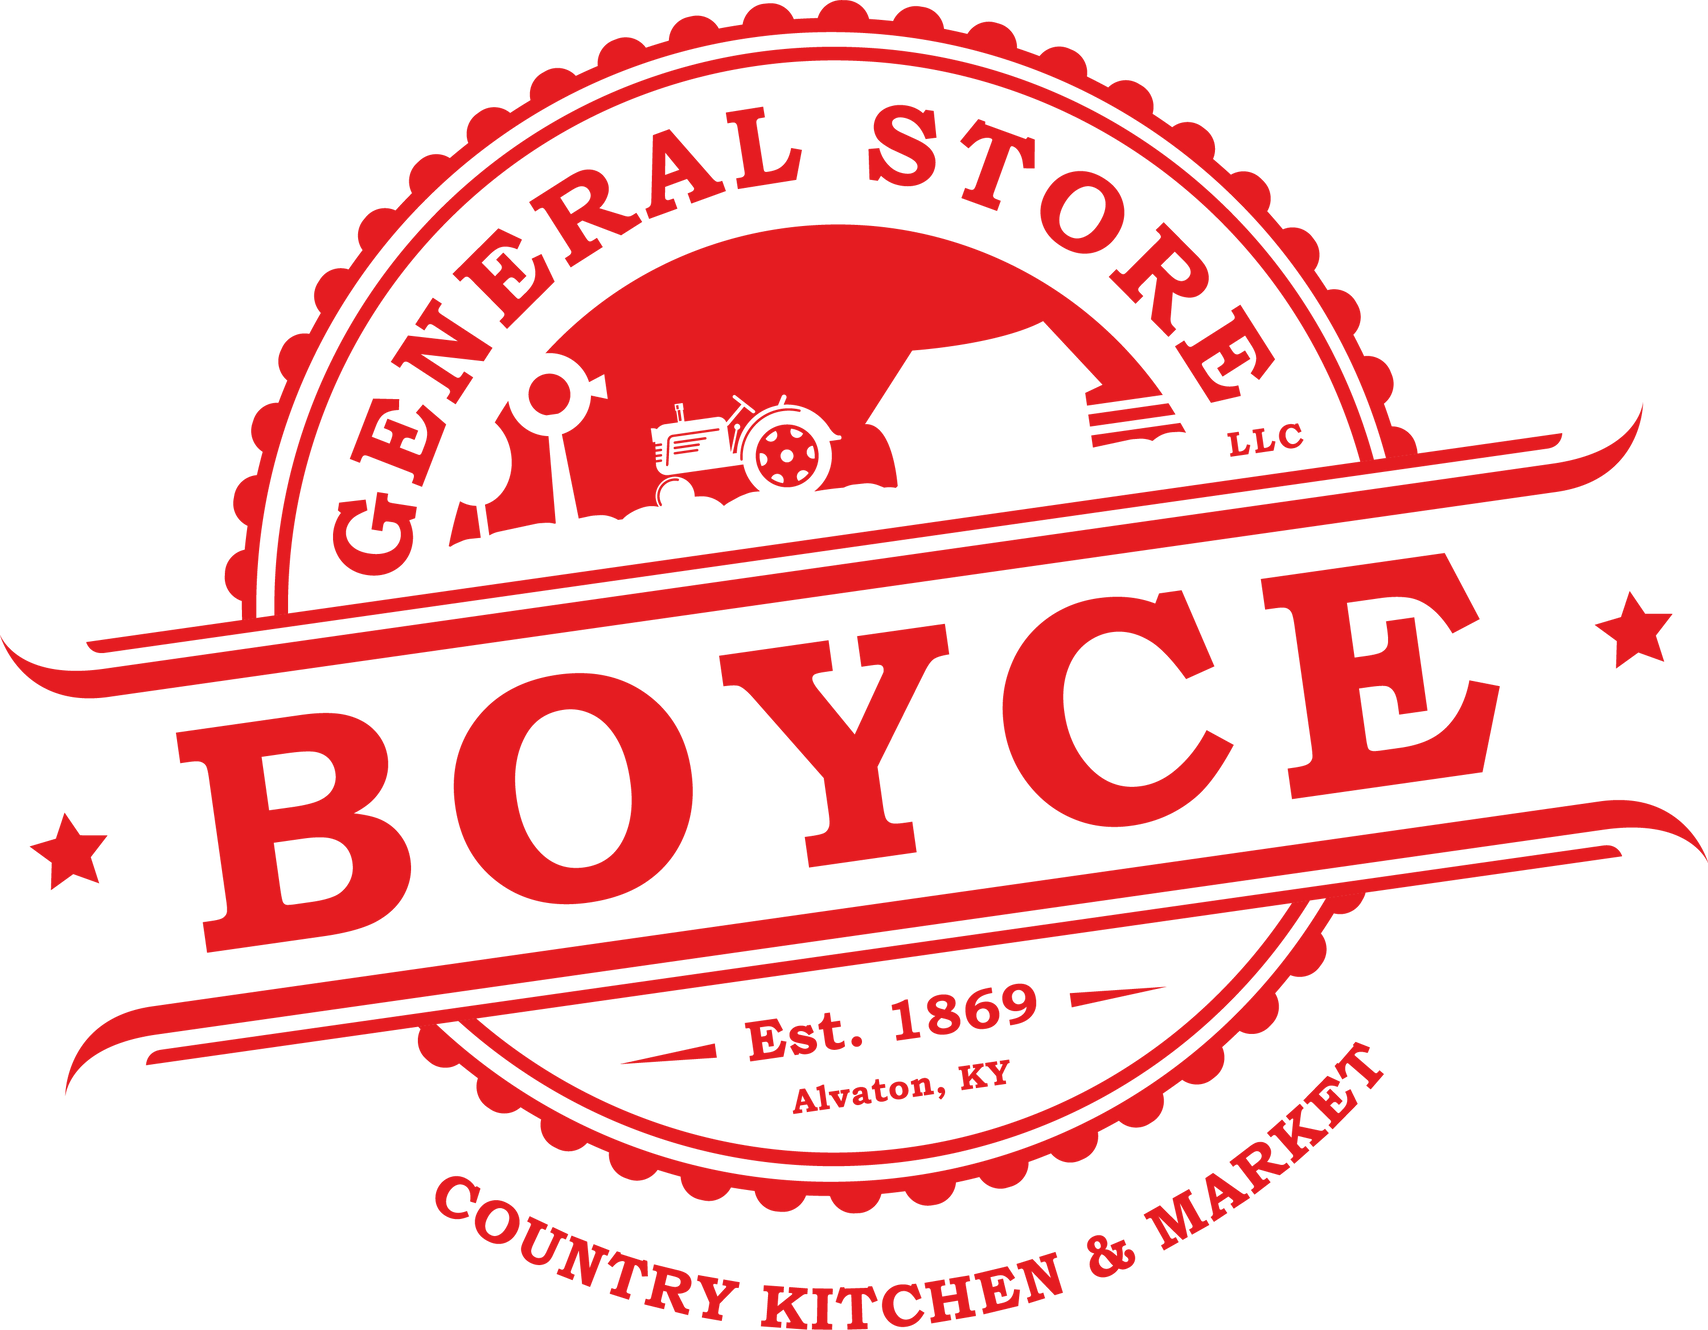 Boyce General Store | Southern Cooking & Pies | Alvaton, KY